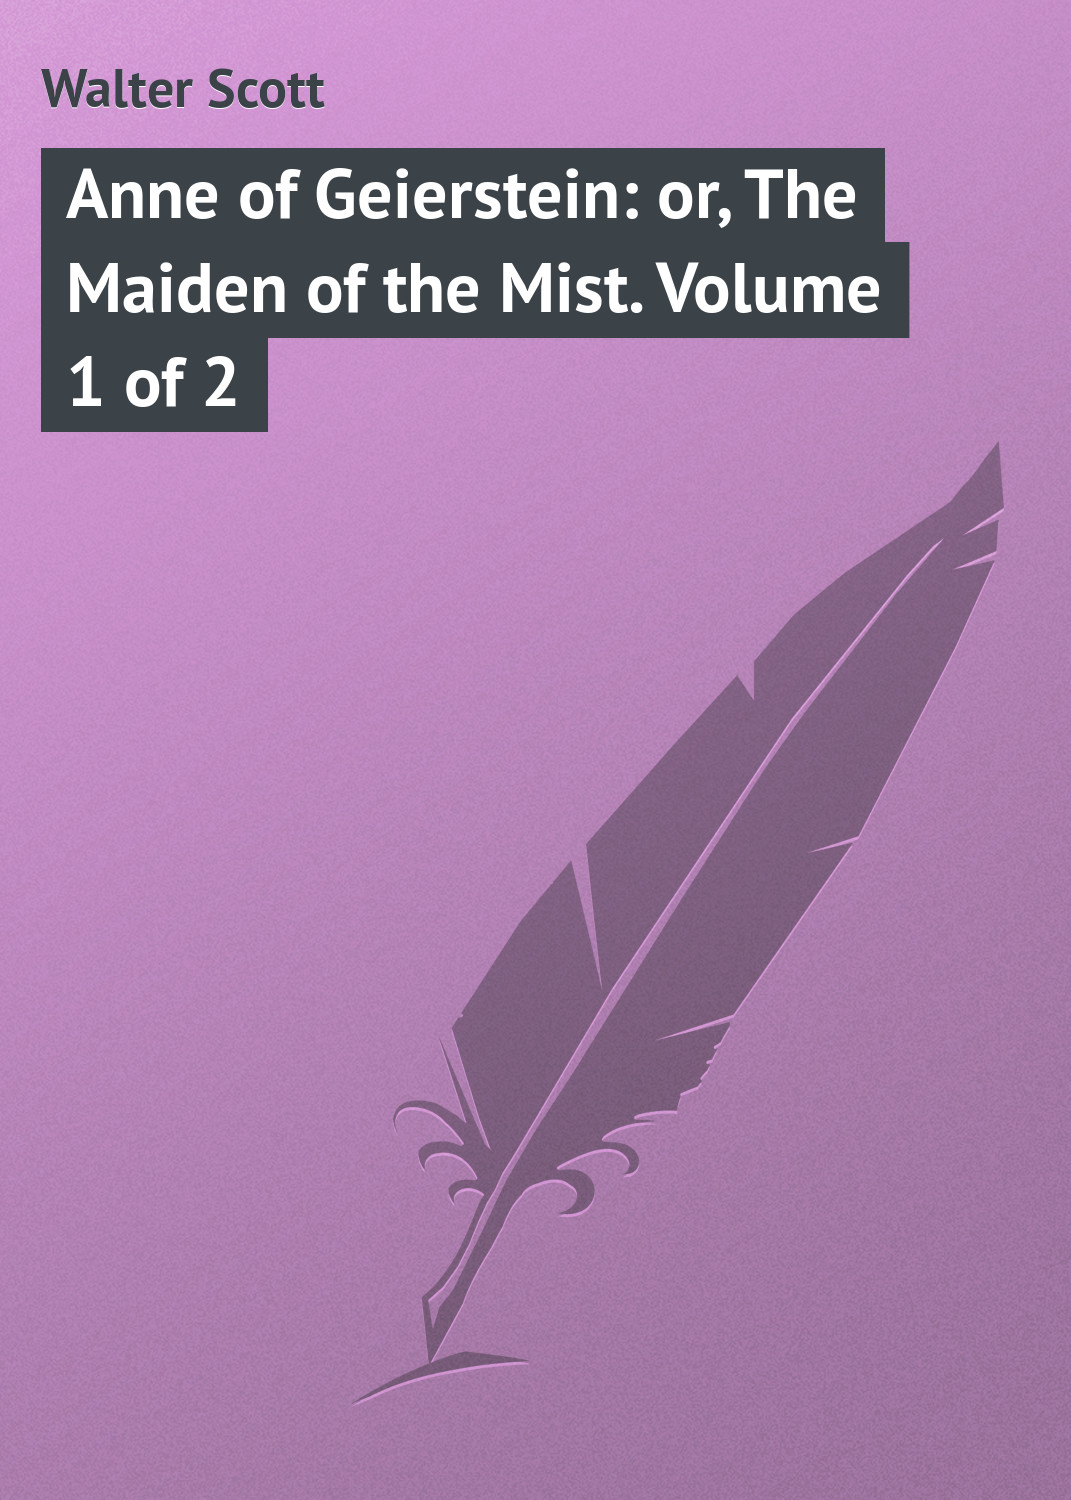 Вальтер Скотт Anne of Geierstein: or, The Maiden of the Mist. Volume 1 of 2